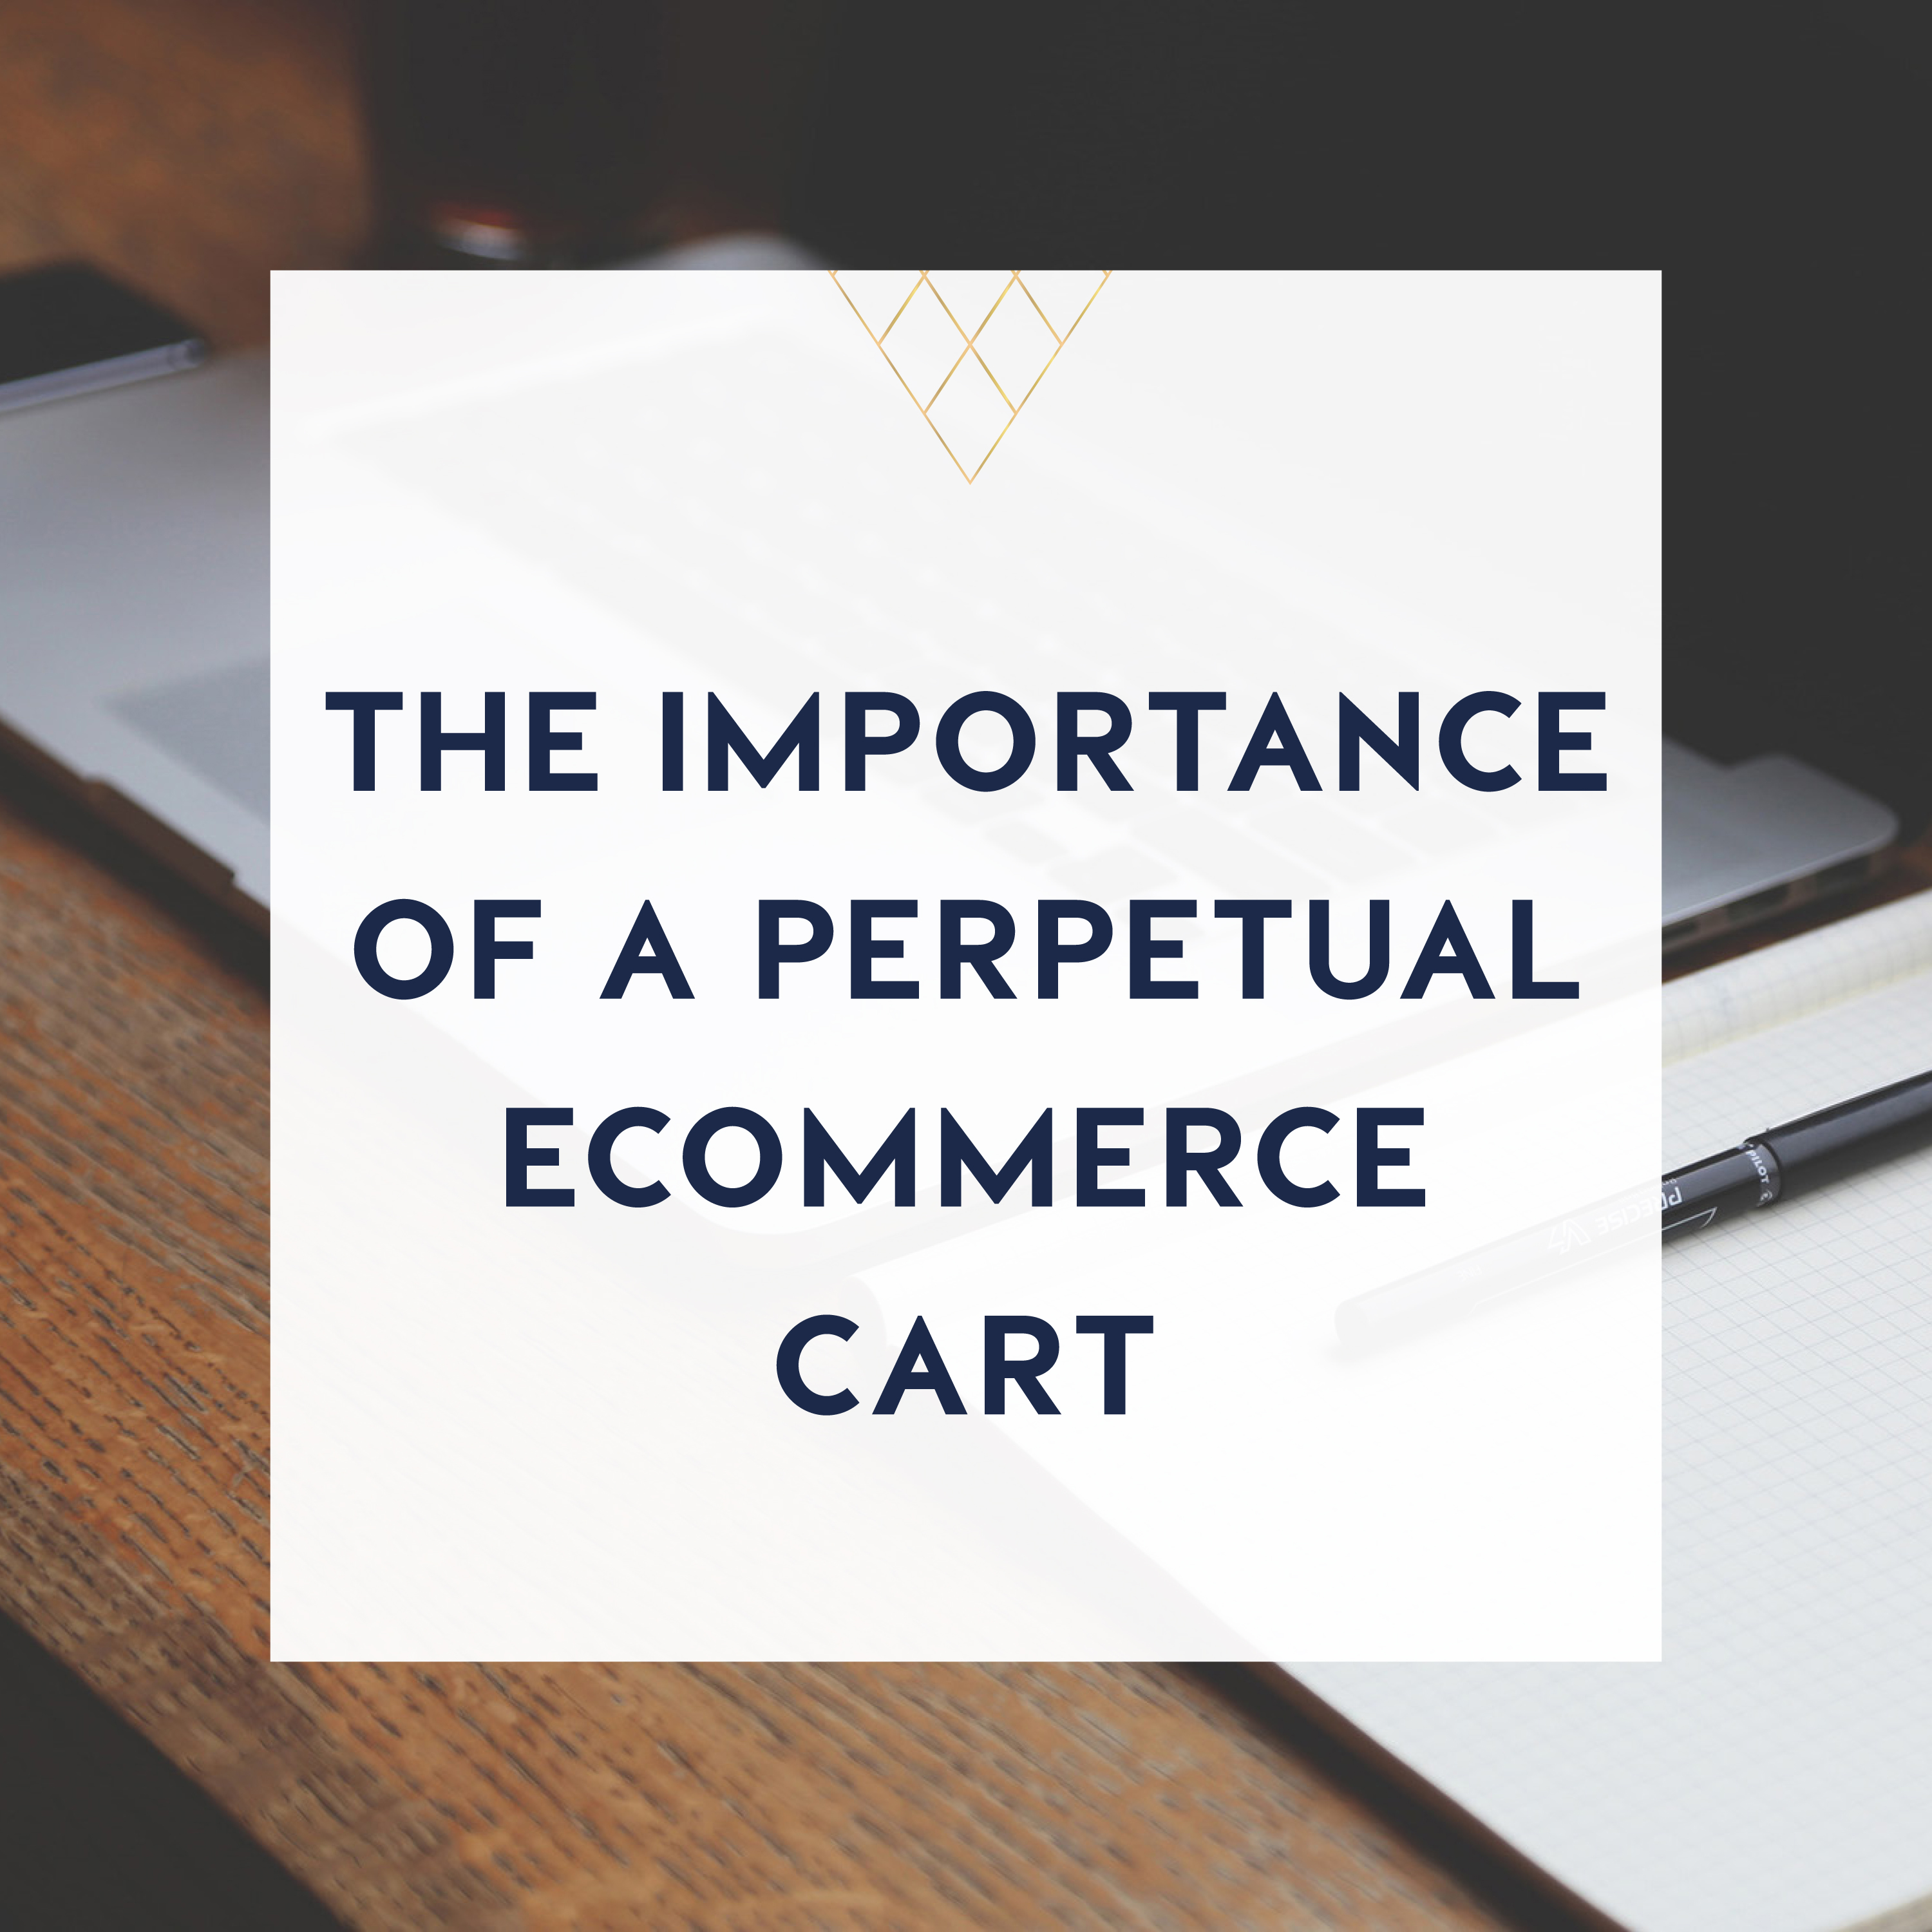 the importance of a perpetual ecommerce cart